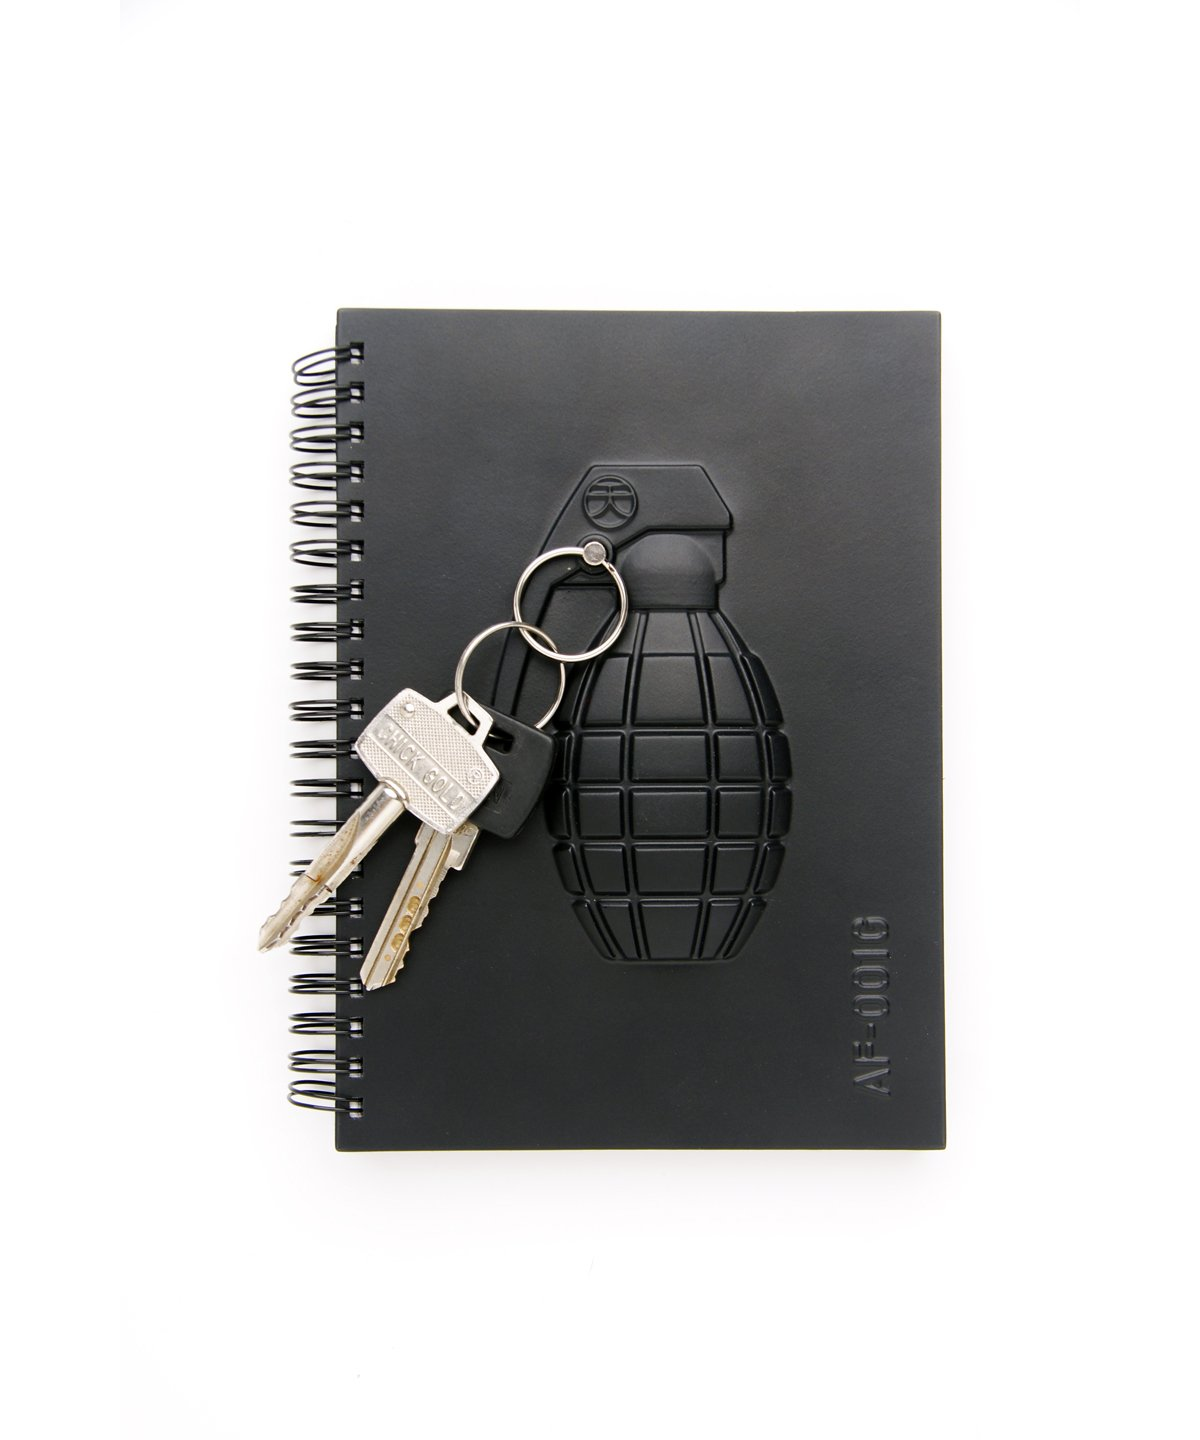 Armed Notebook – Grenade-22781